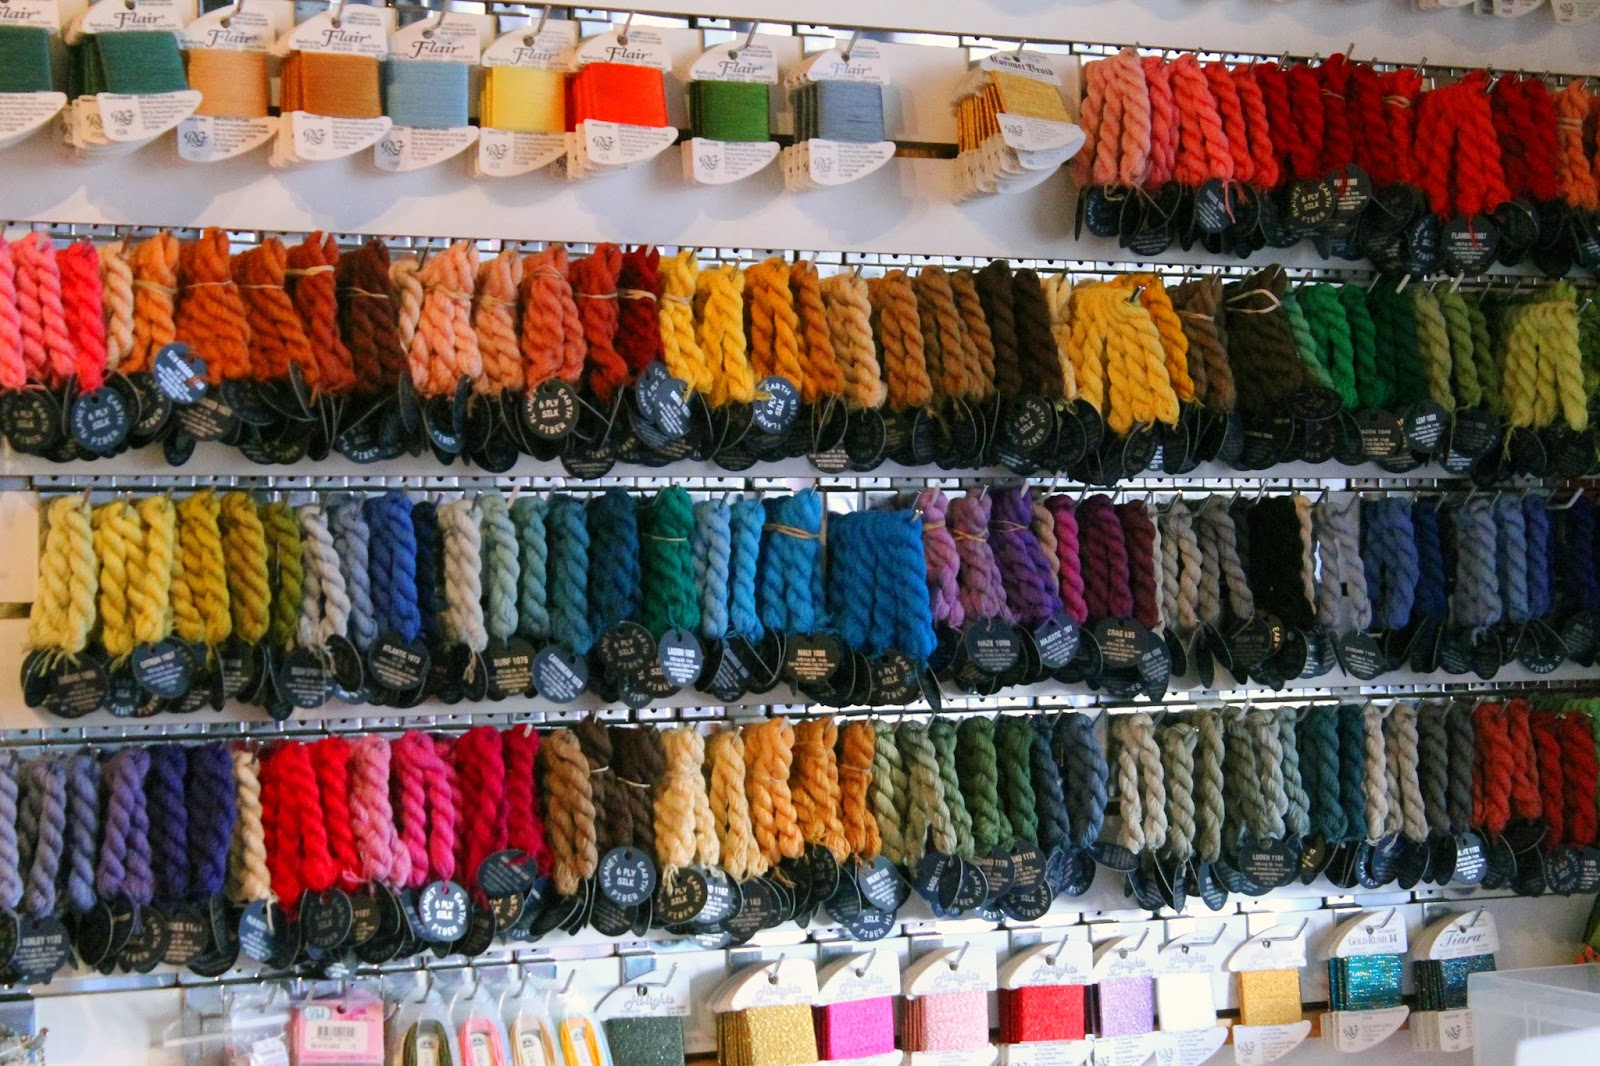 Threads And Fibers Mail: Adorn: Fibers And Threads, I Need Your Suggestions